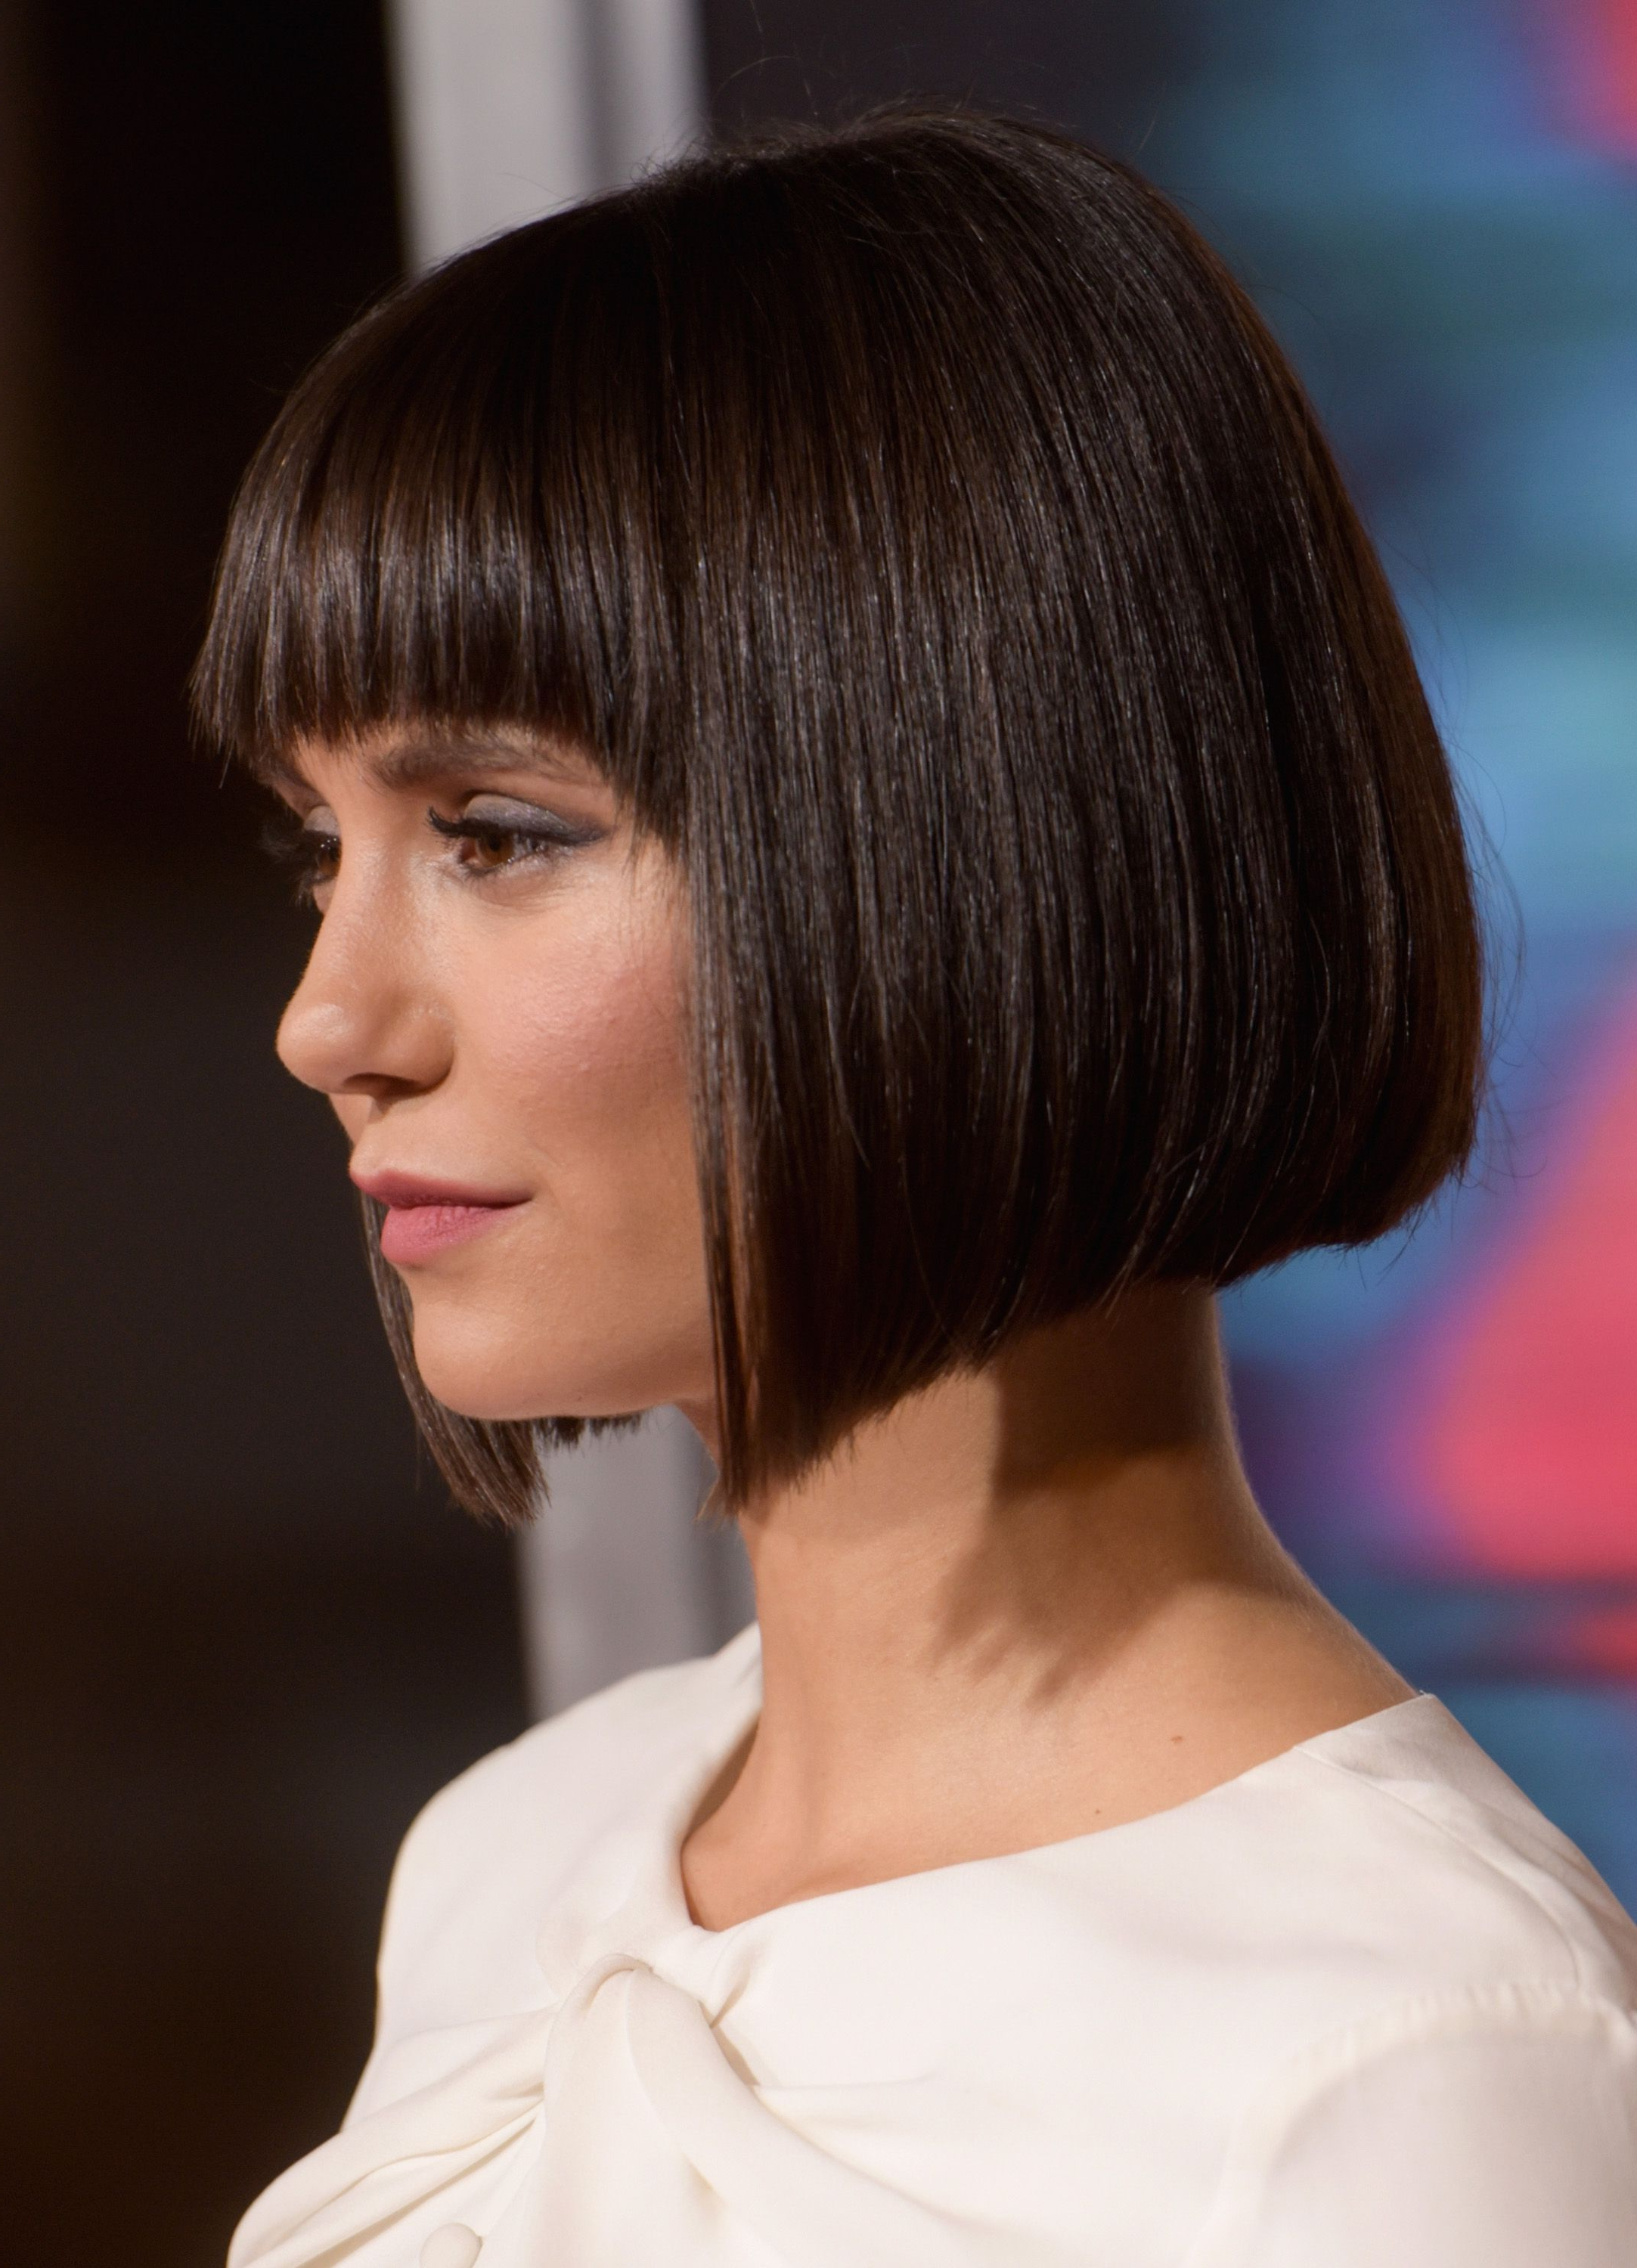 70 Best Bob Styles Of 2019 – Bob Haircuts & Hairstyles For Women Regarding Classy Bob Haircuts With Bangs (View 5 of 20)